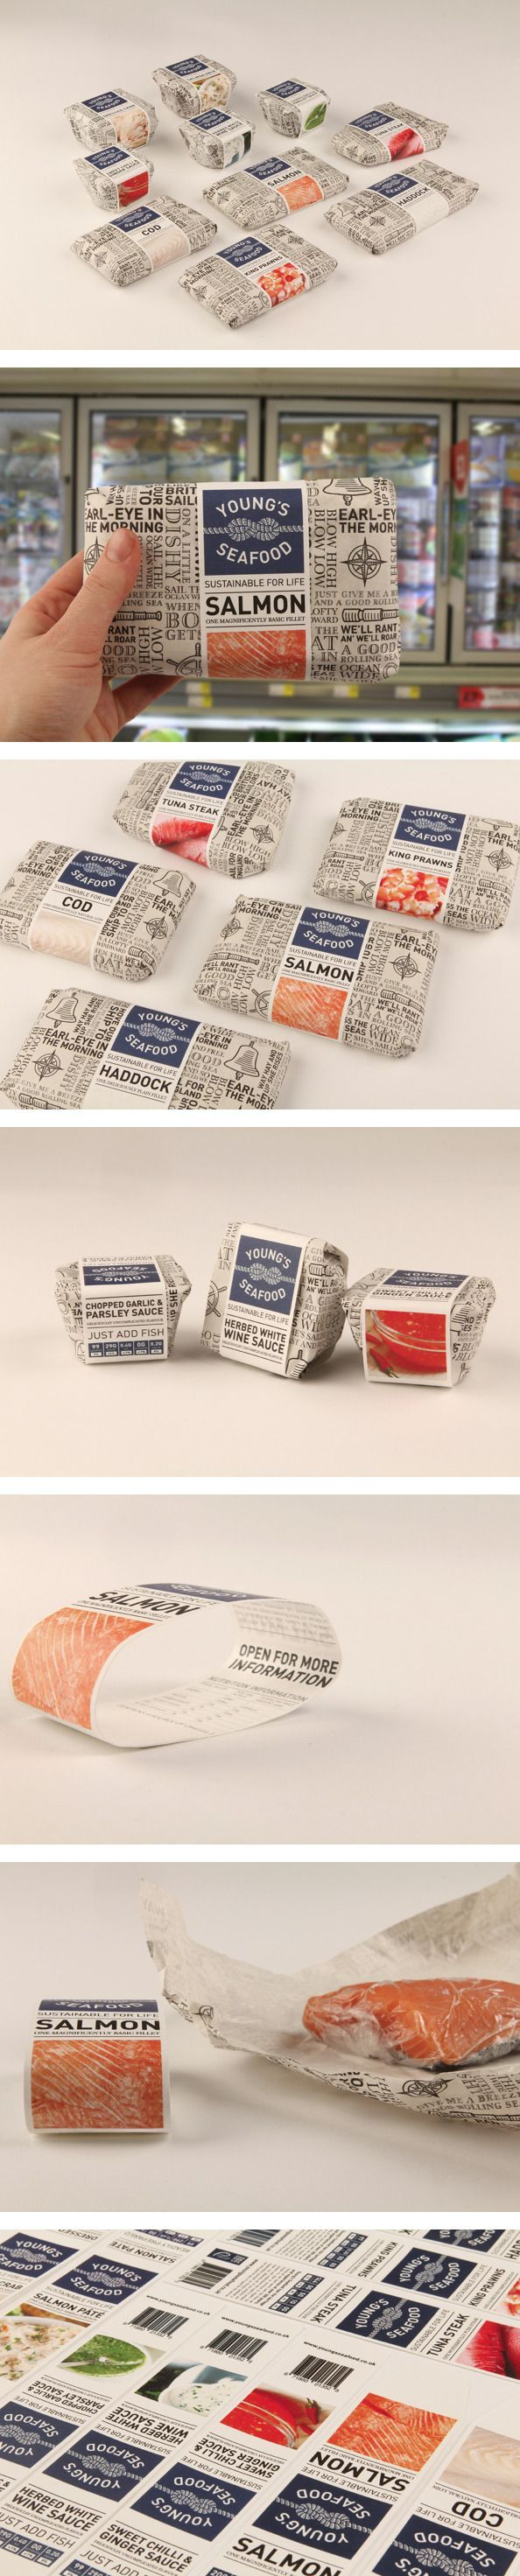 Young's Seafood by Emily Myers, via Behance   #packaging #seafood #awesome i love this, i really do.